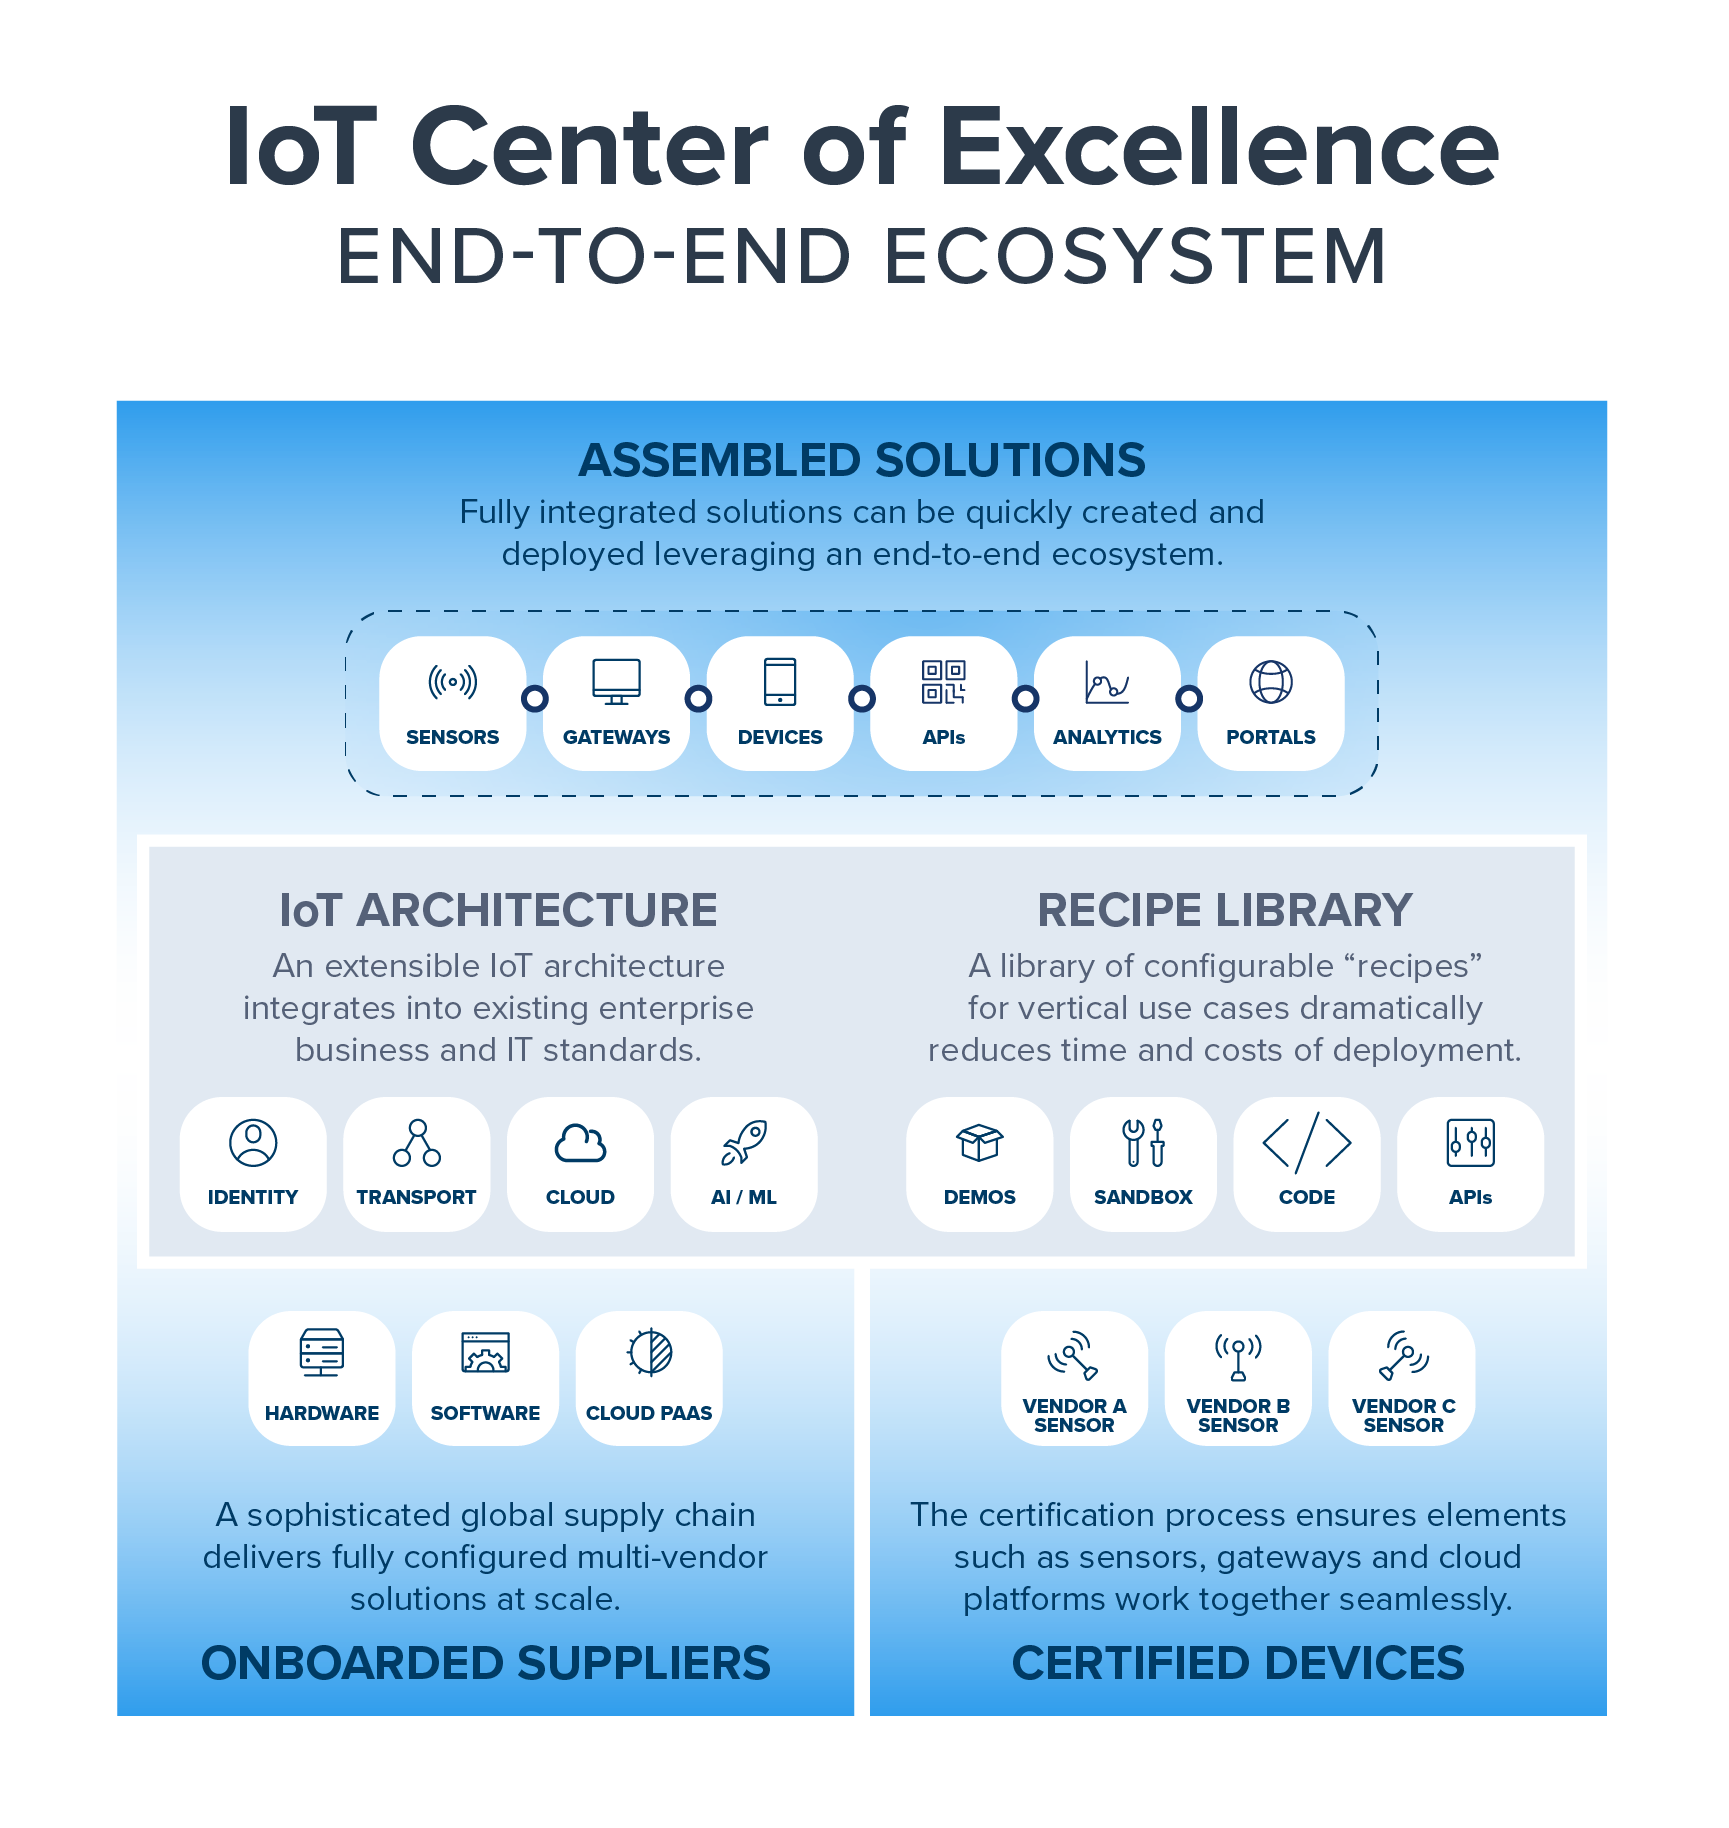 IoT Center of Excellence End-to-End Ecosystem